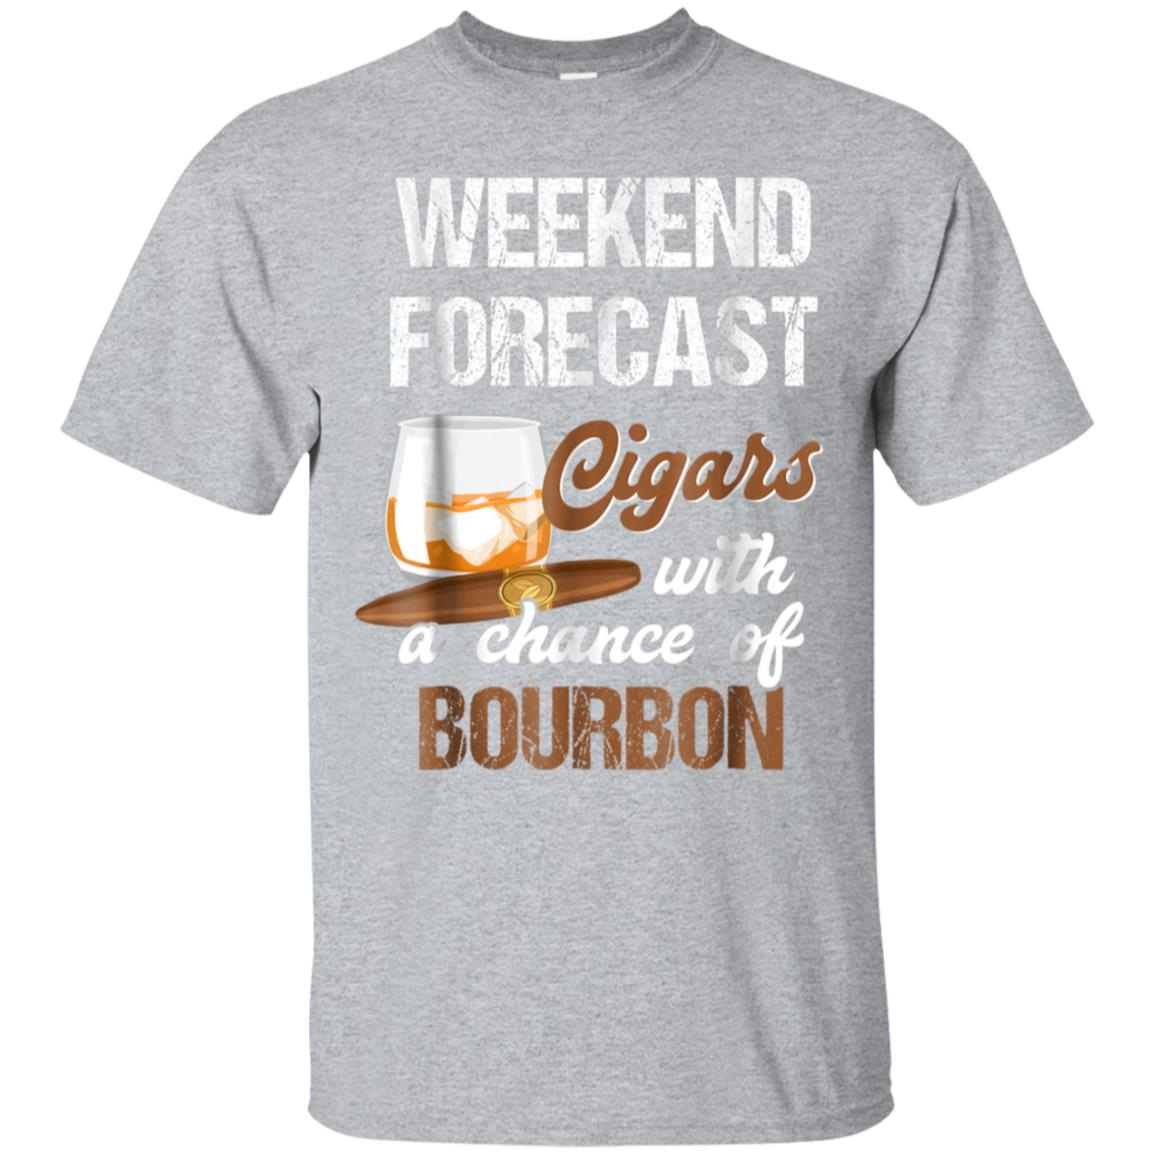 Cool Shirt For Cigars And Bourbon Lover. Gift For Grandpa 99promocode